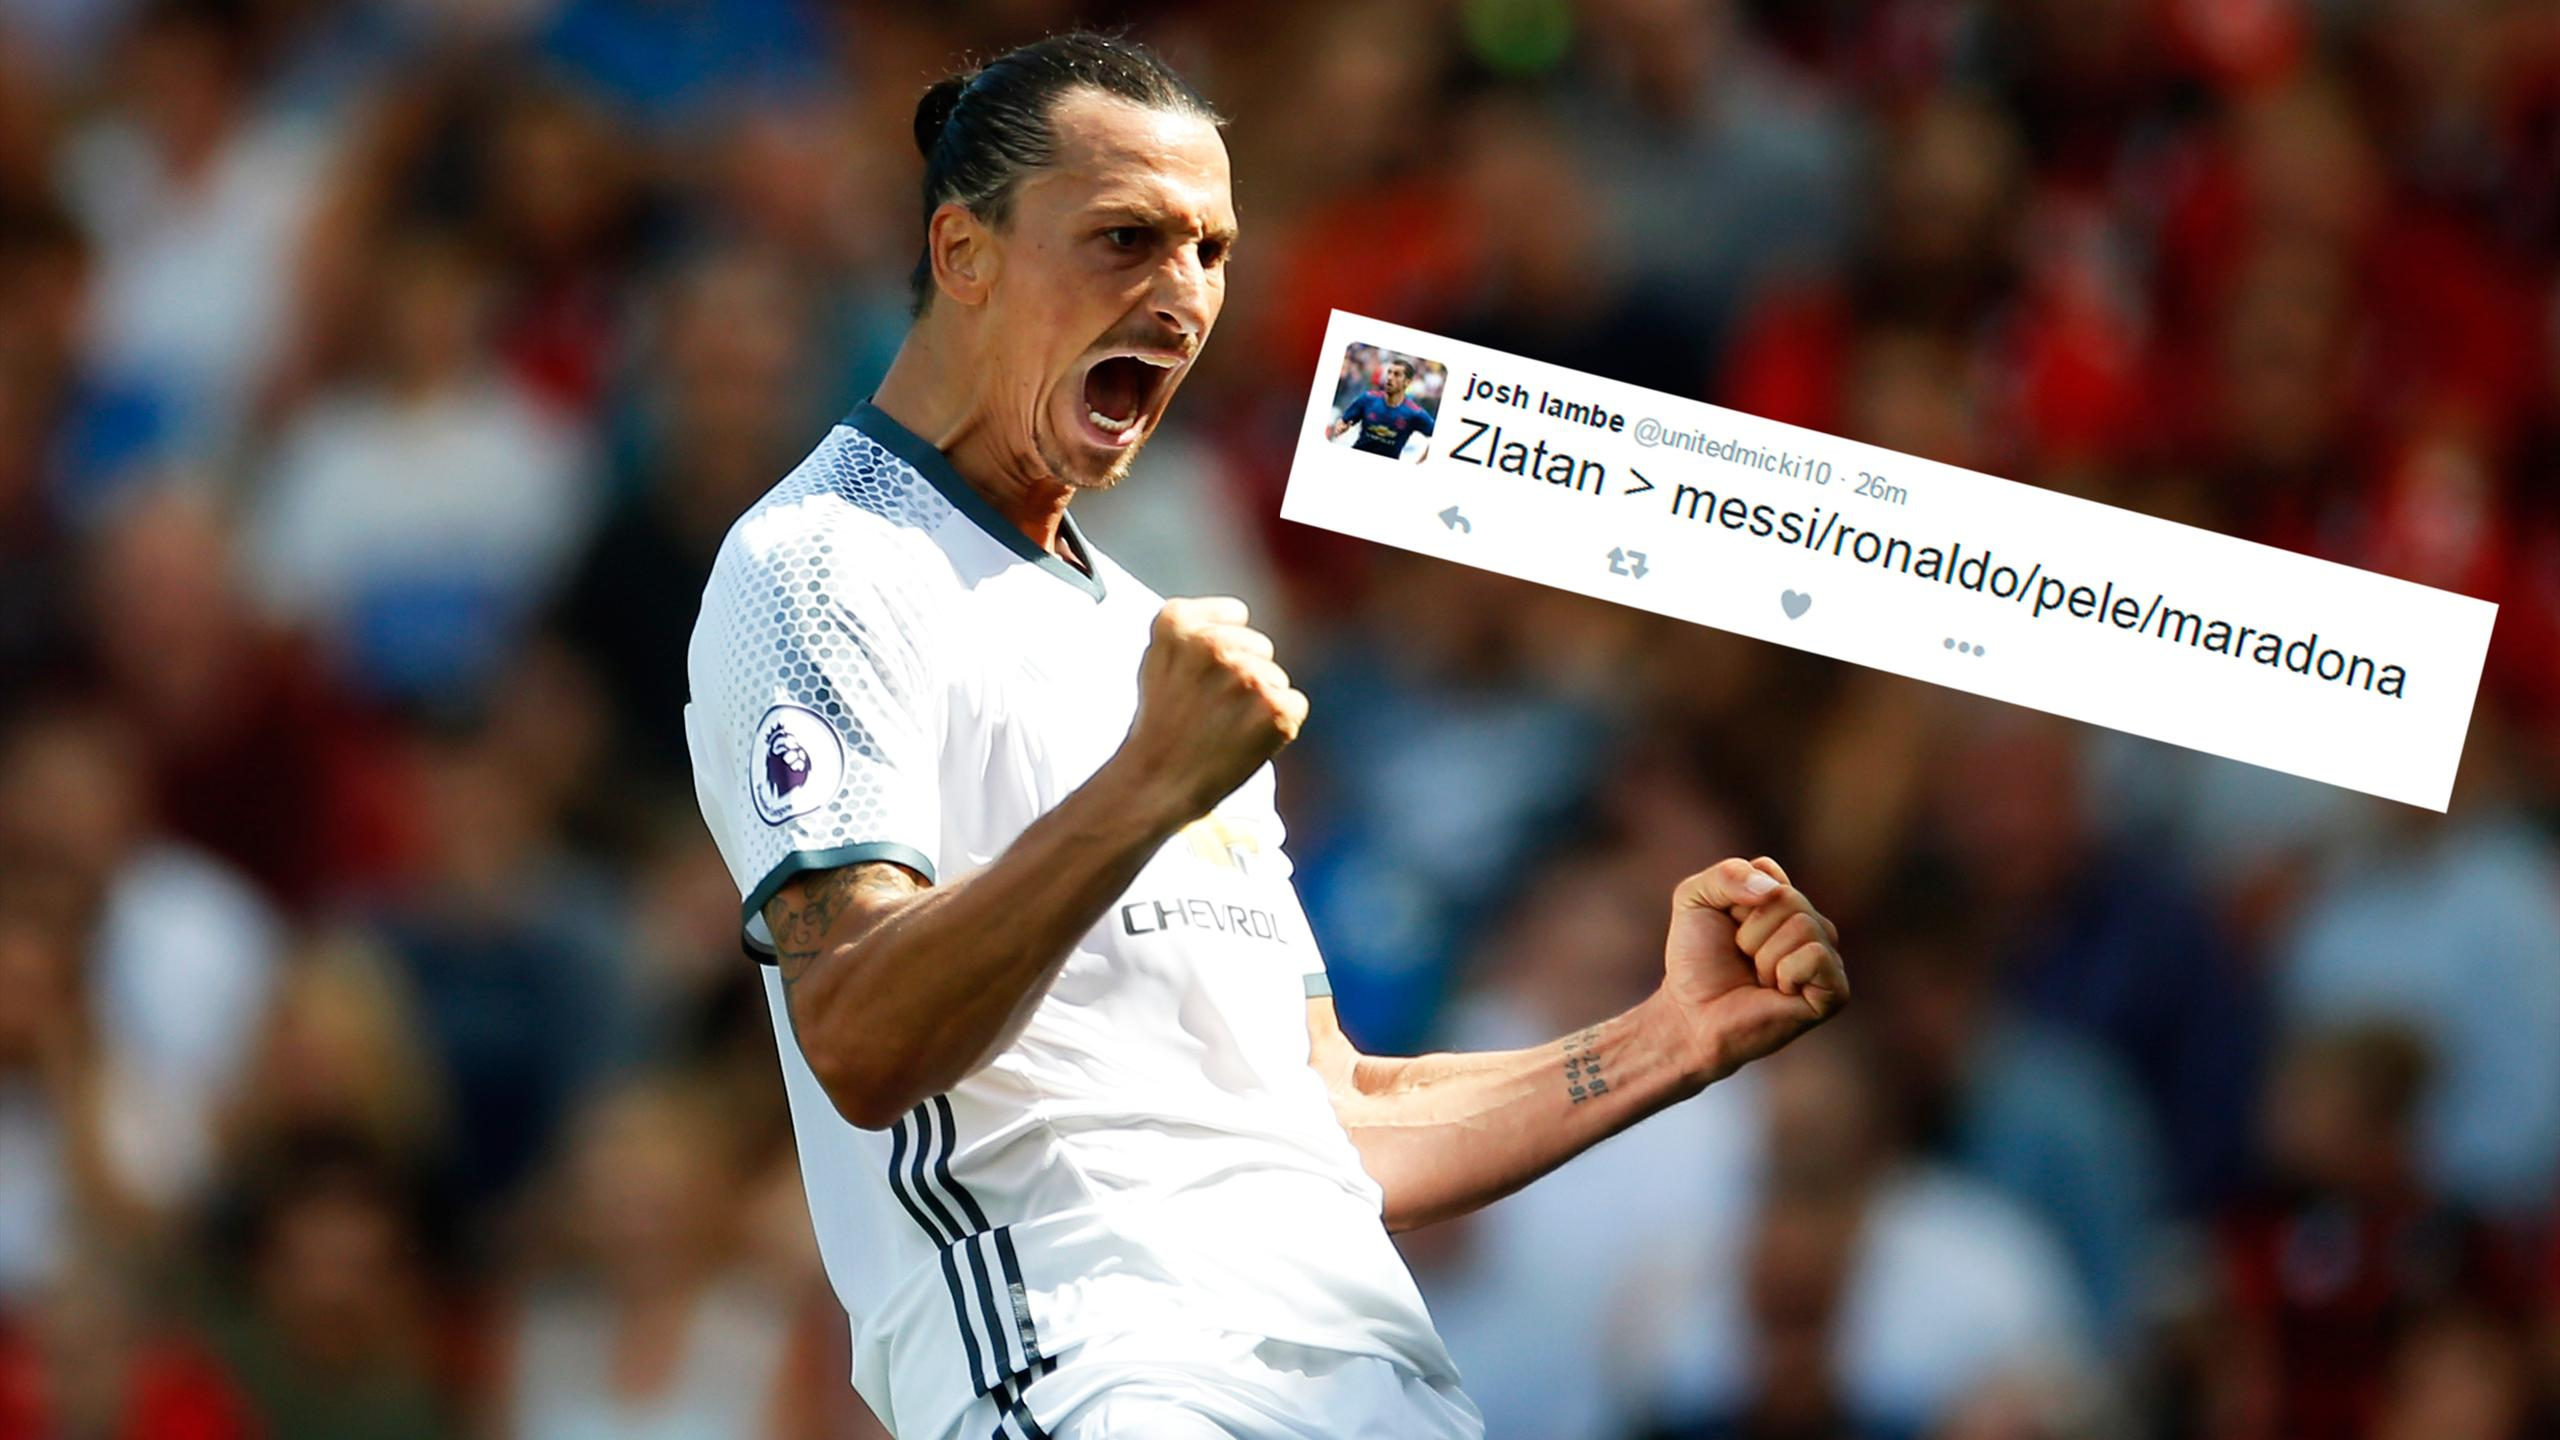 Zlatan Ibrahimovic and praise for the Manchester United forward